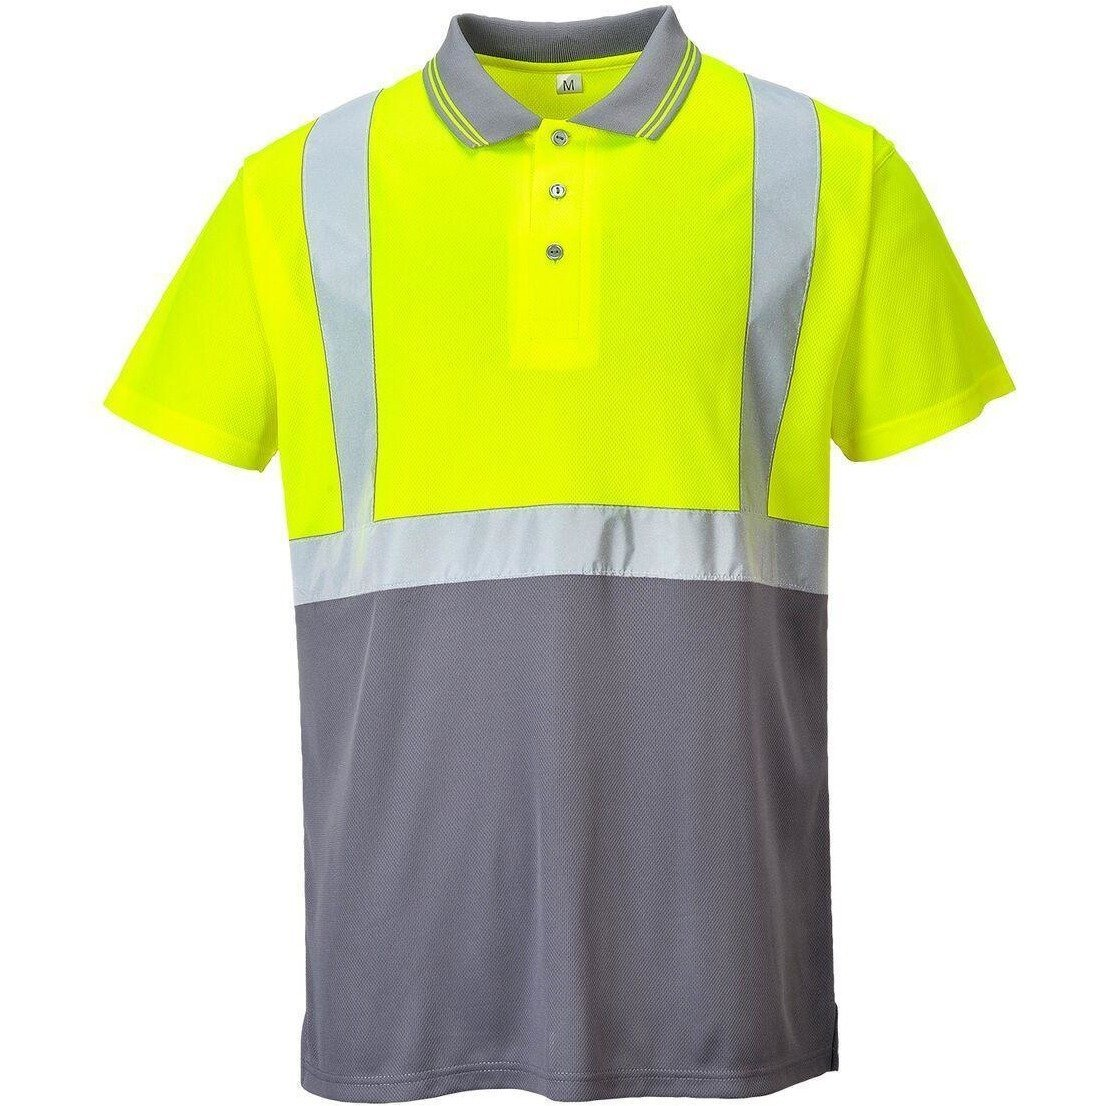 Portwest Two-Tone Polo S479 - reid outdoors